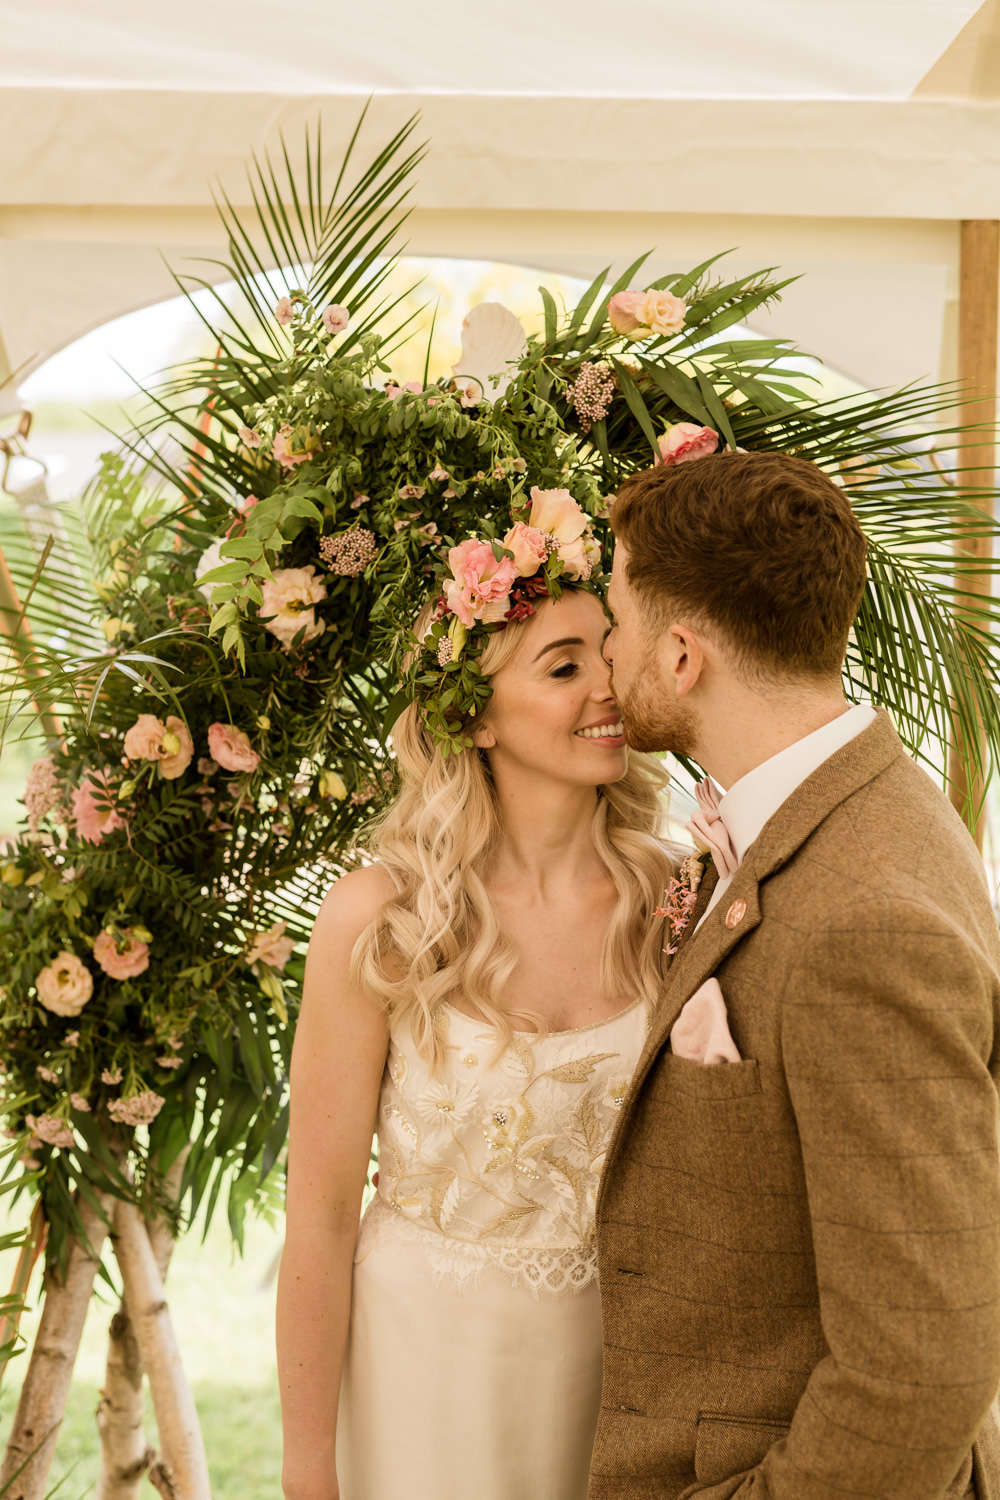 Backdrop Arch Pampas Grass Palm Leaves Fresia Flowers Pink Foliage Greenery Tropical Boho Countryside Wedding Ideas Sarah Brookes Photography